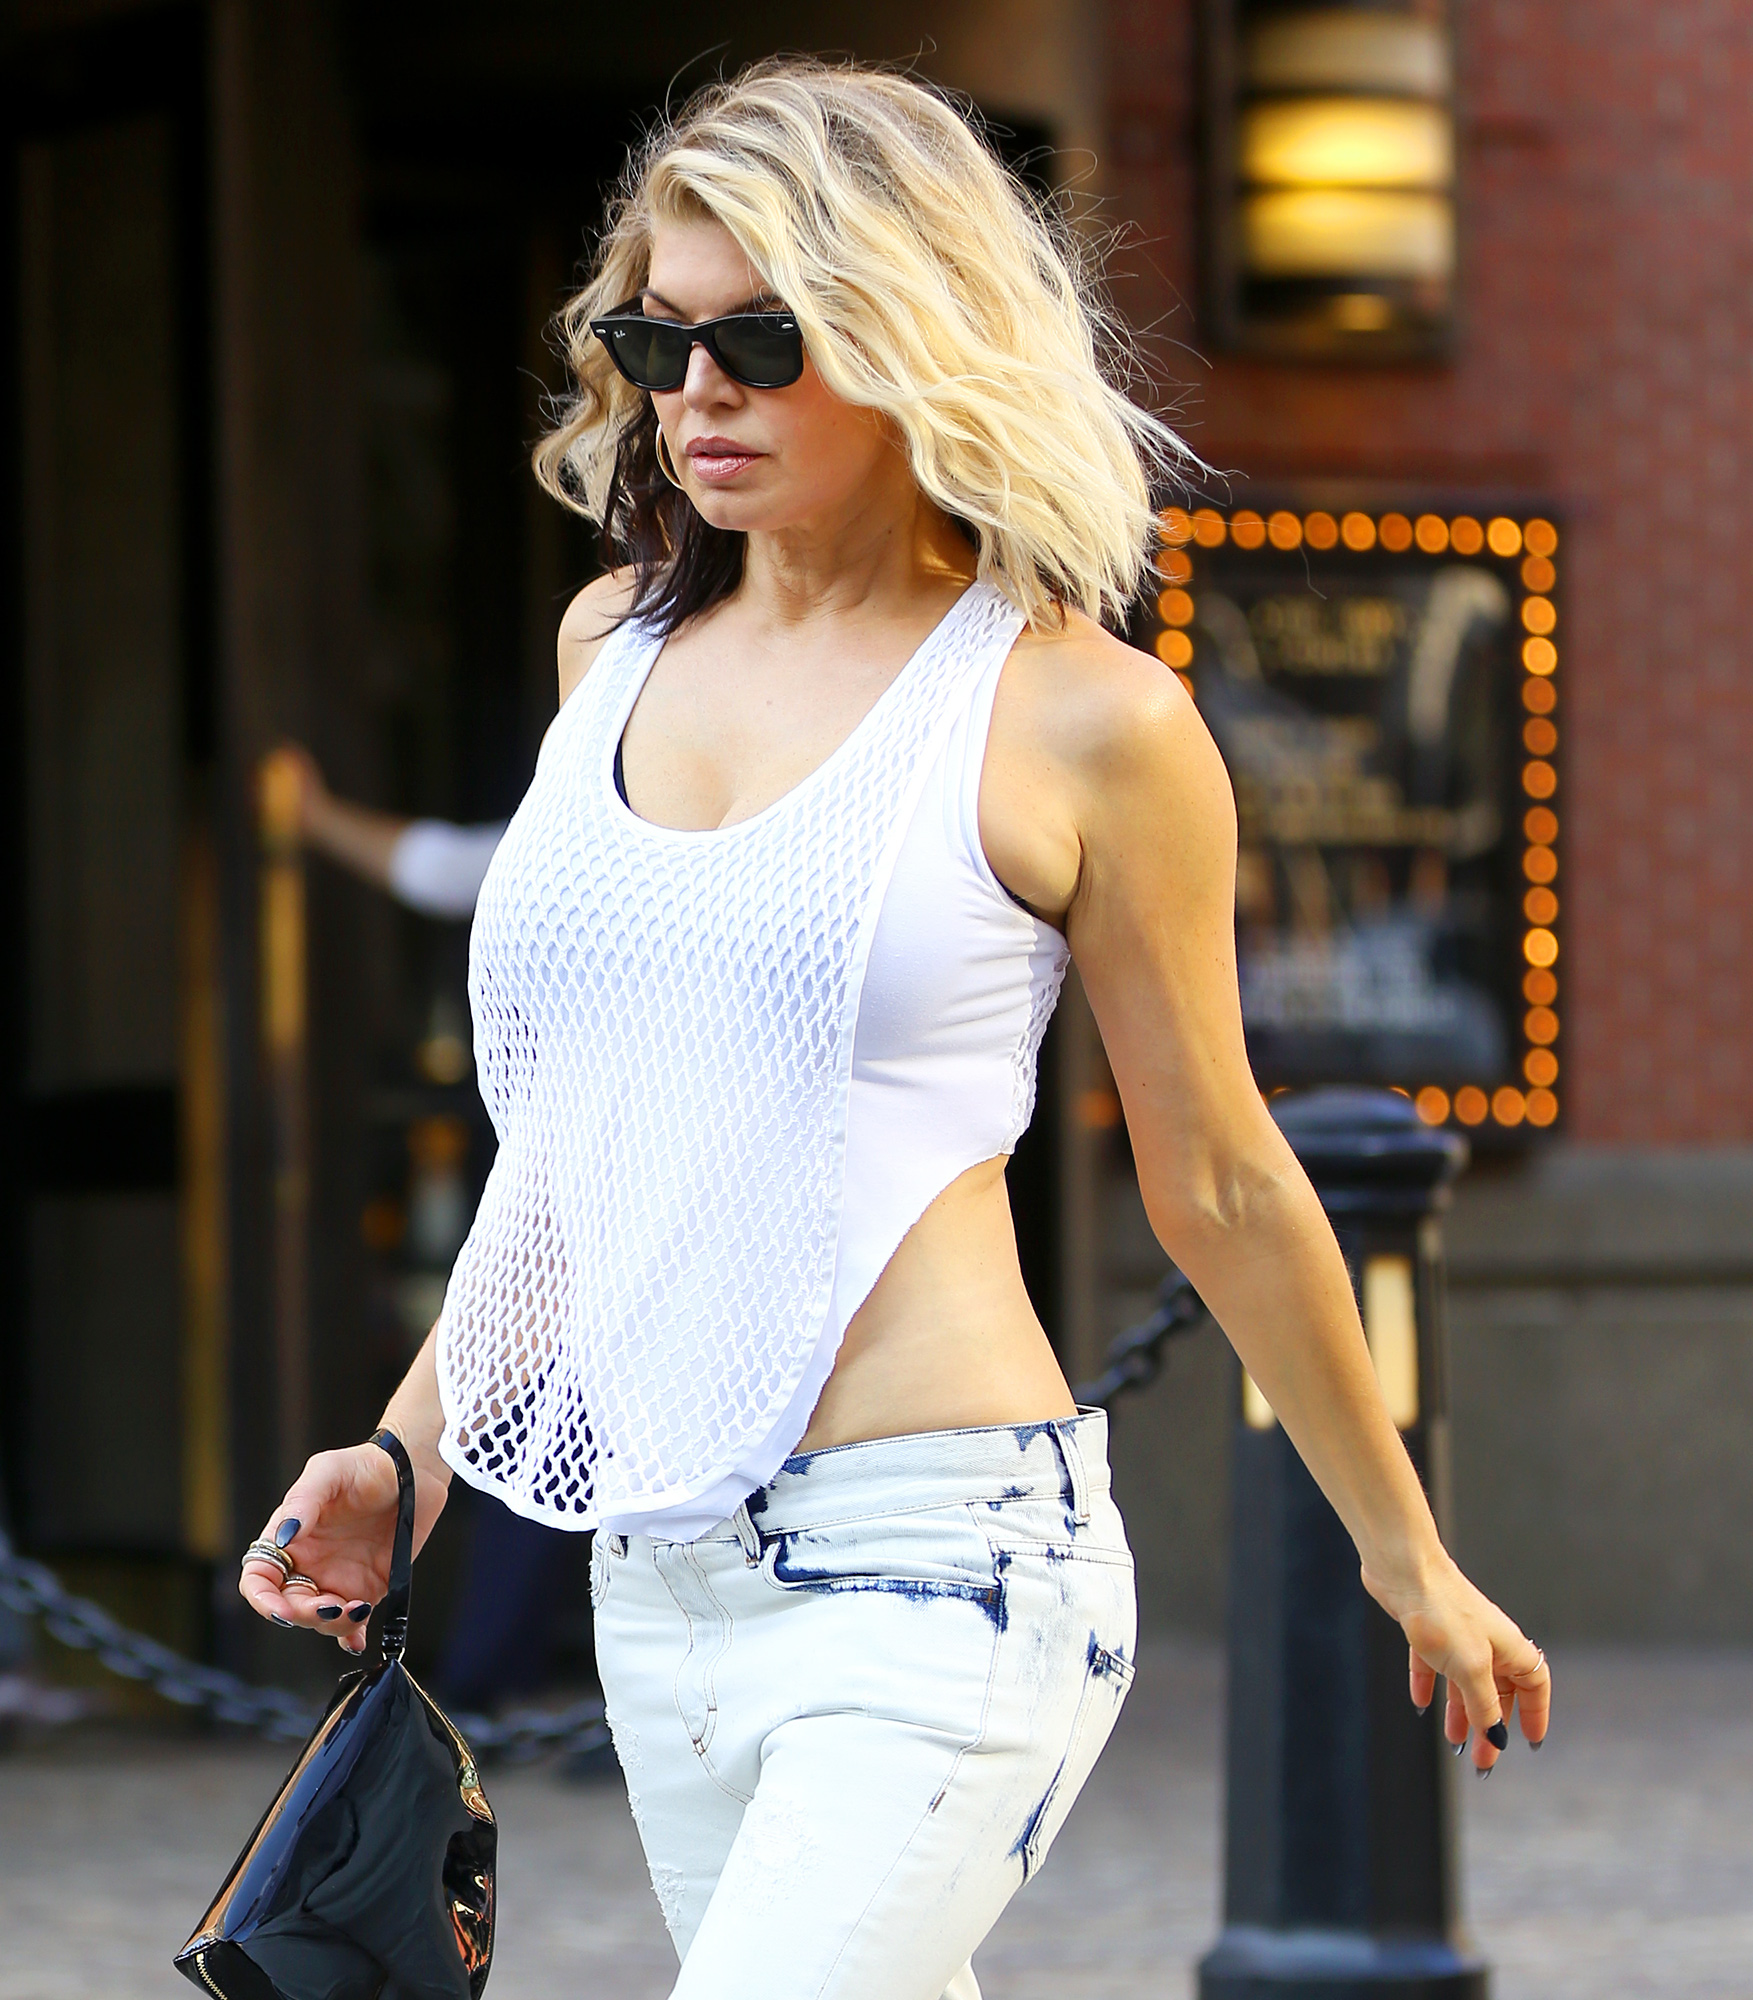 EXCLUSIVE: Fergie steps out in white fashion while showing off her bling in New York City